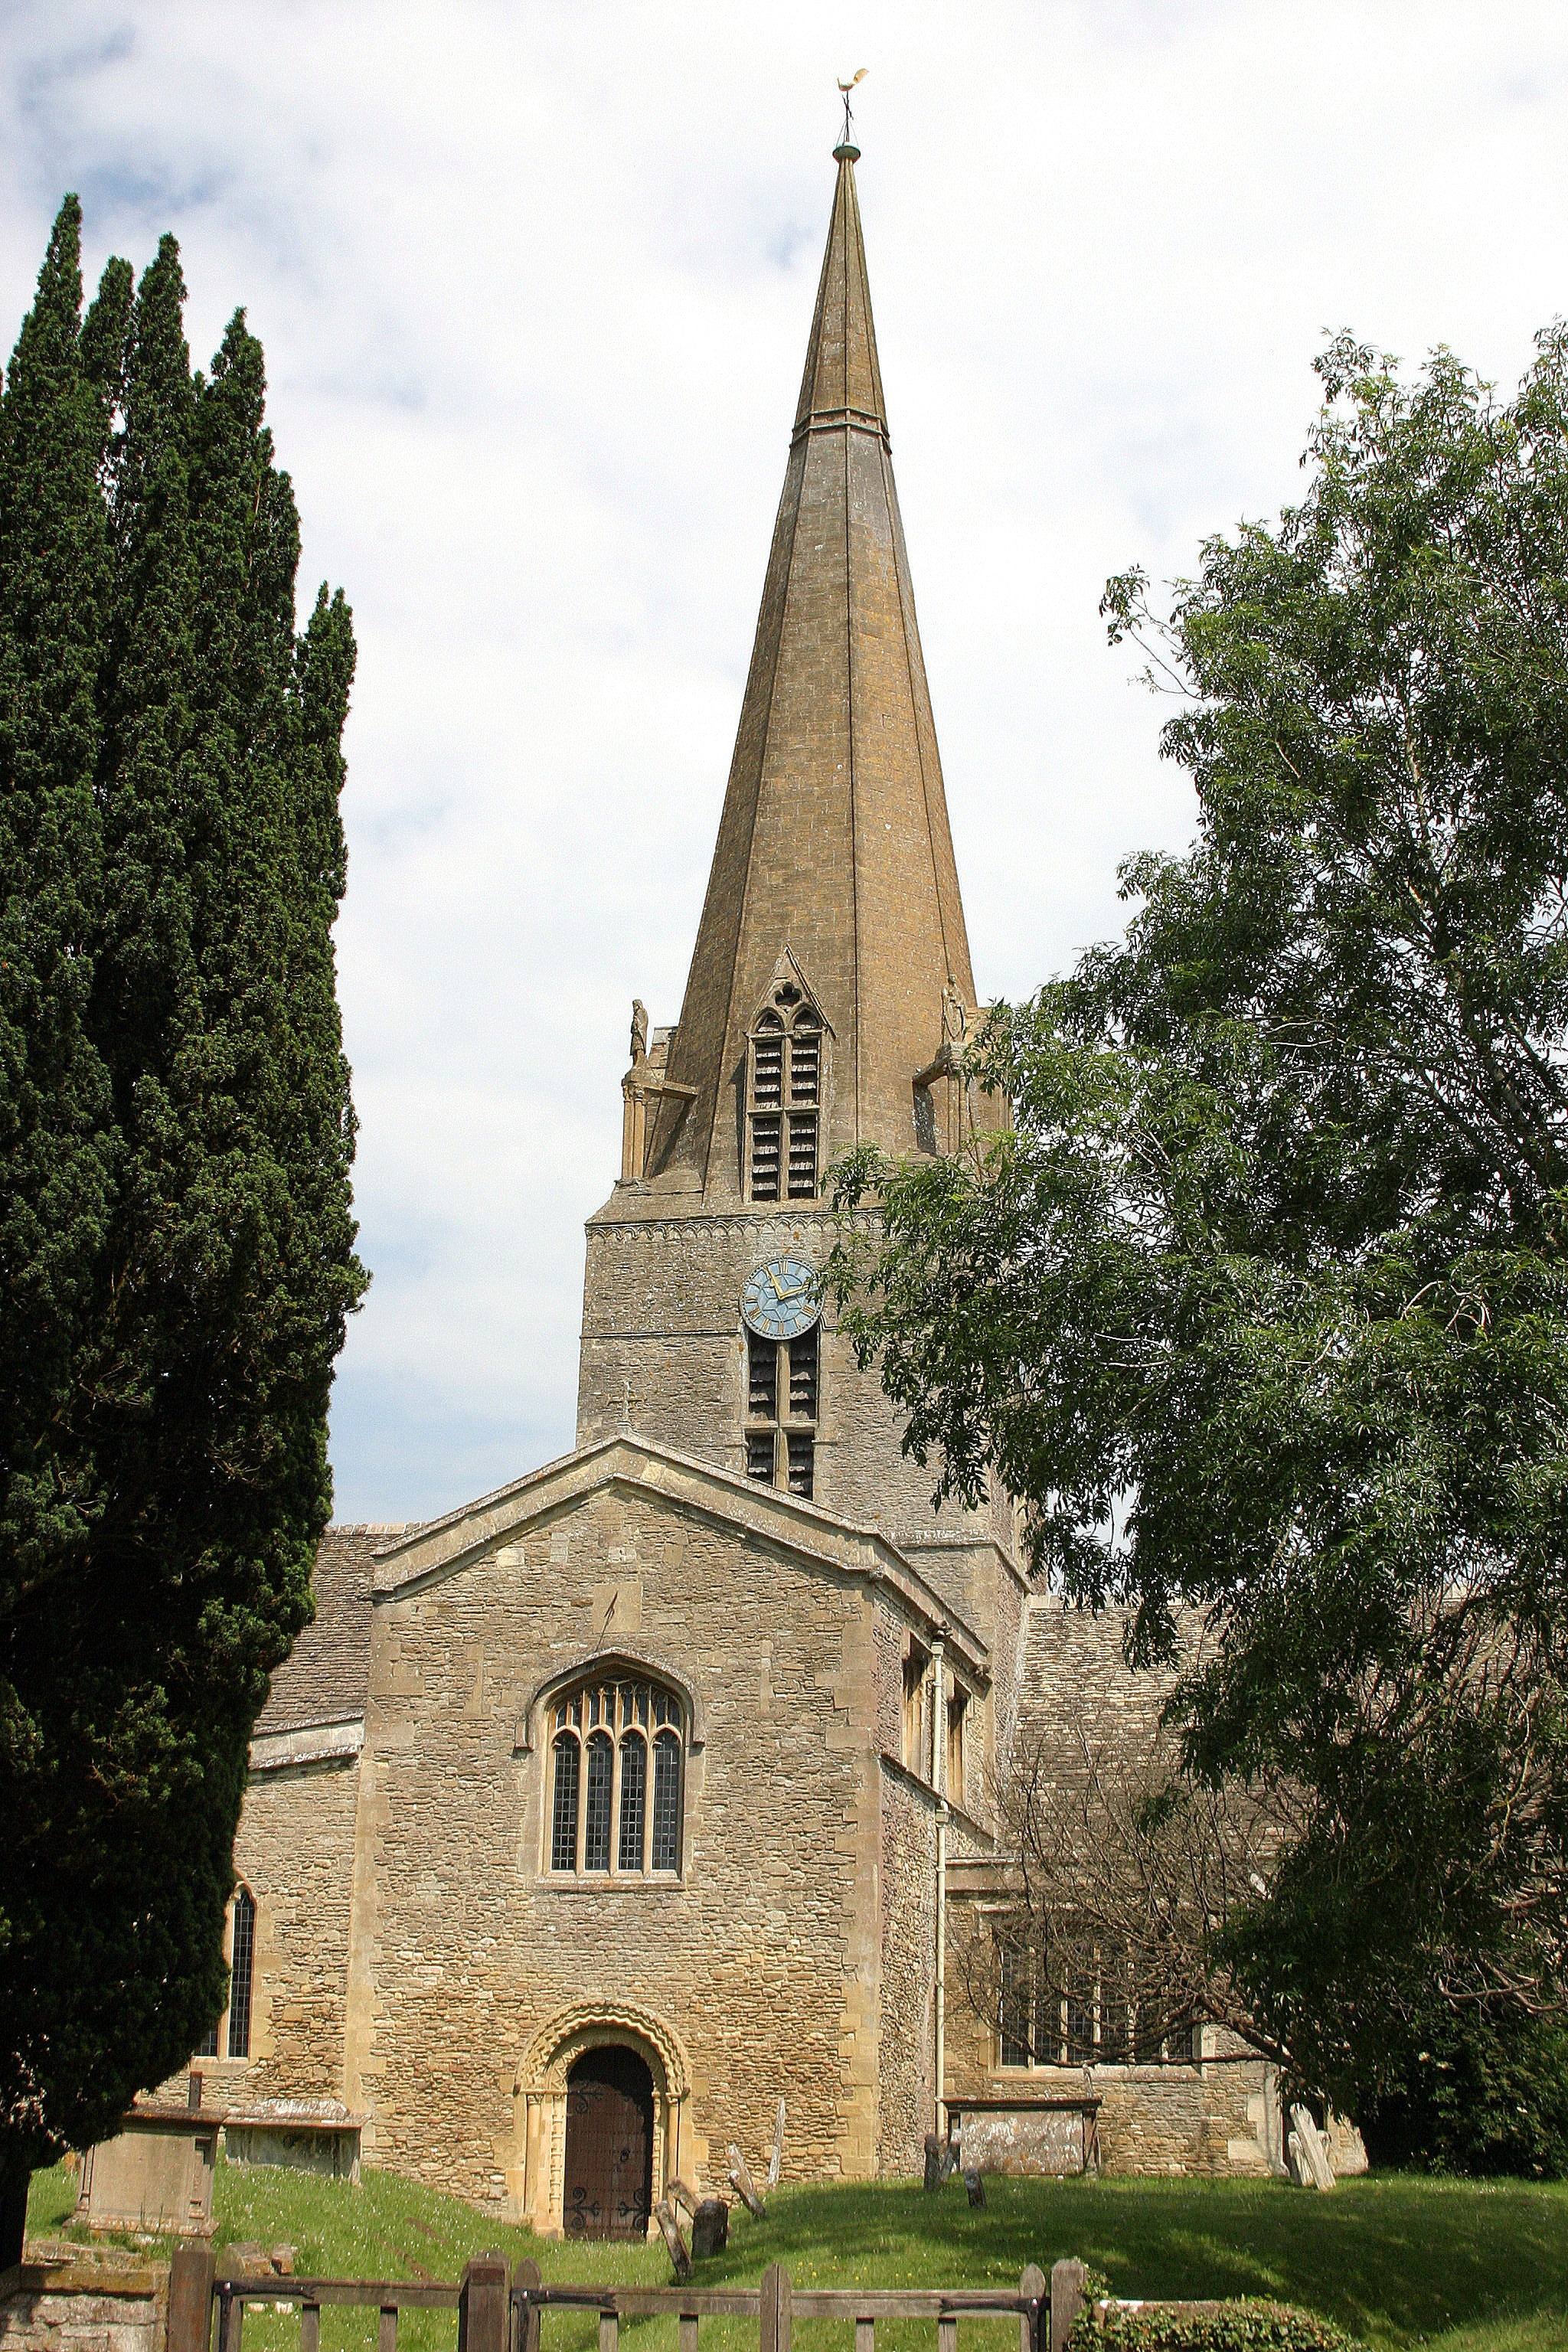 Bampton - St Mary's Church, renamed for the series as St Michael and All Angels